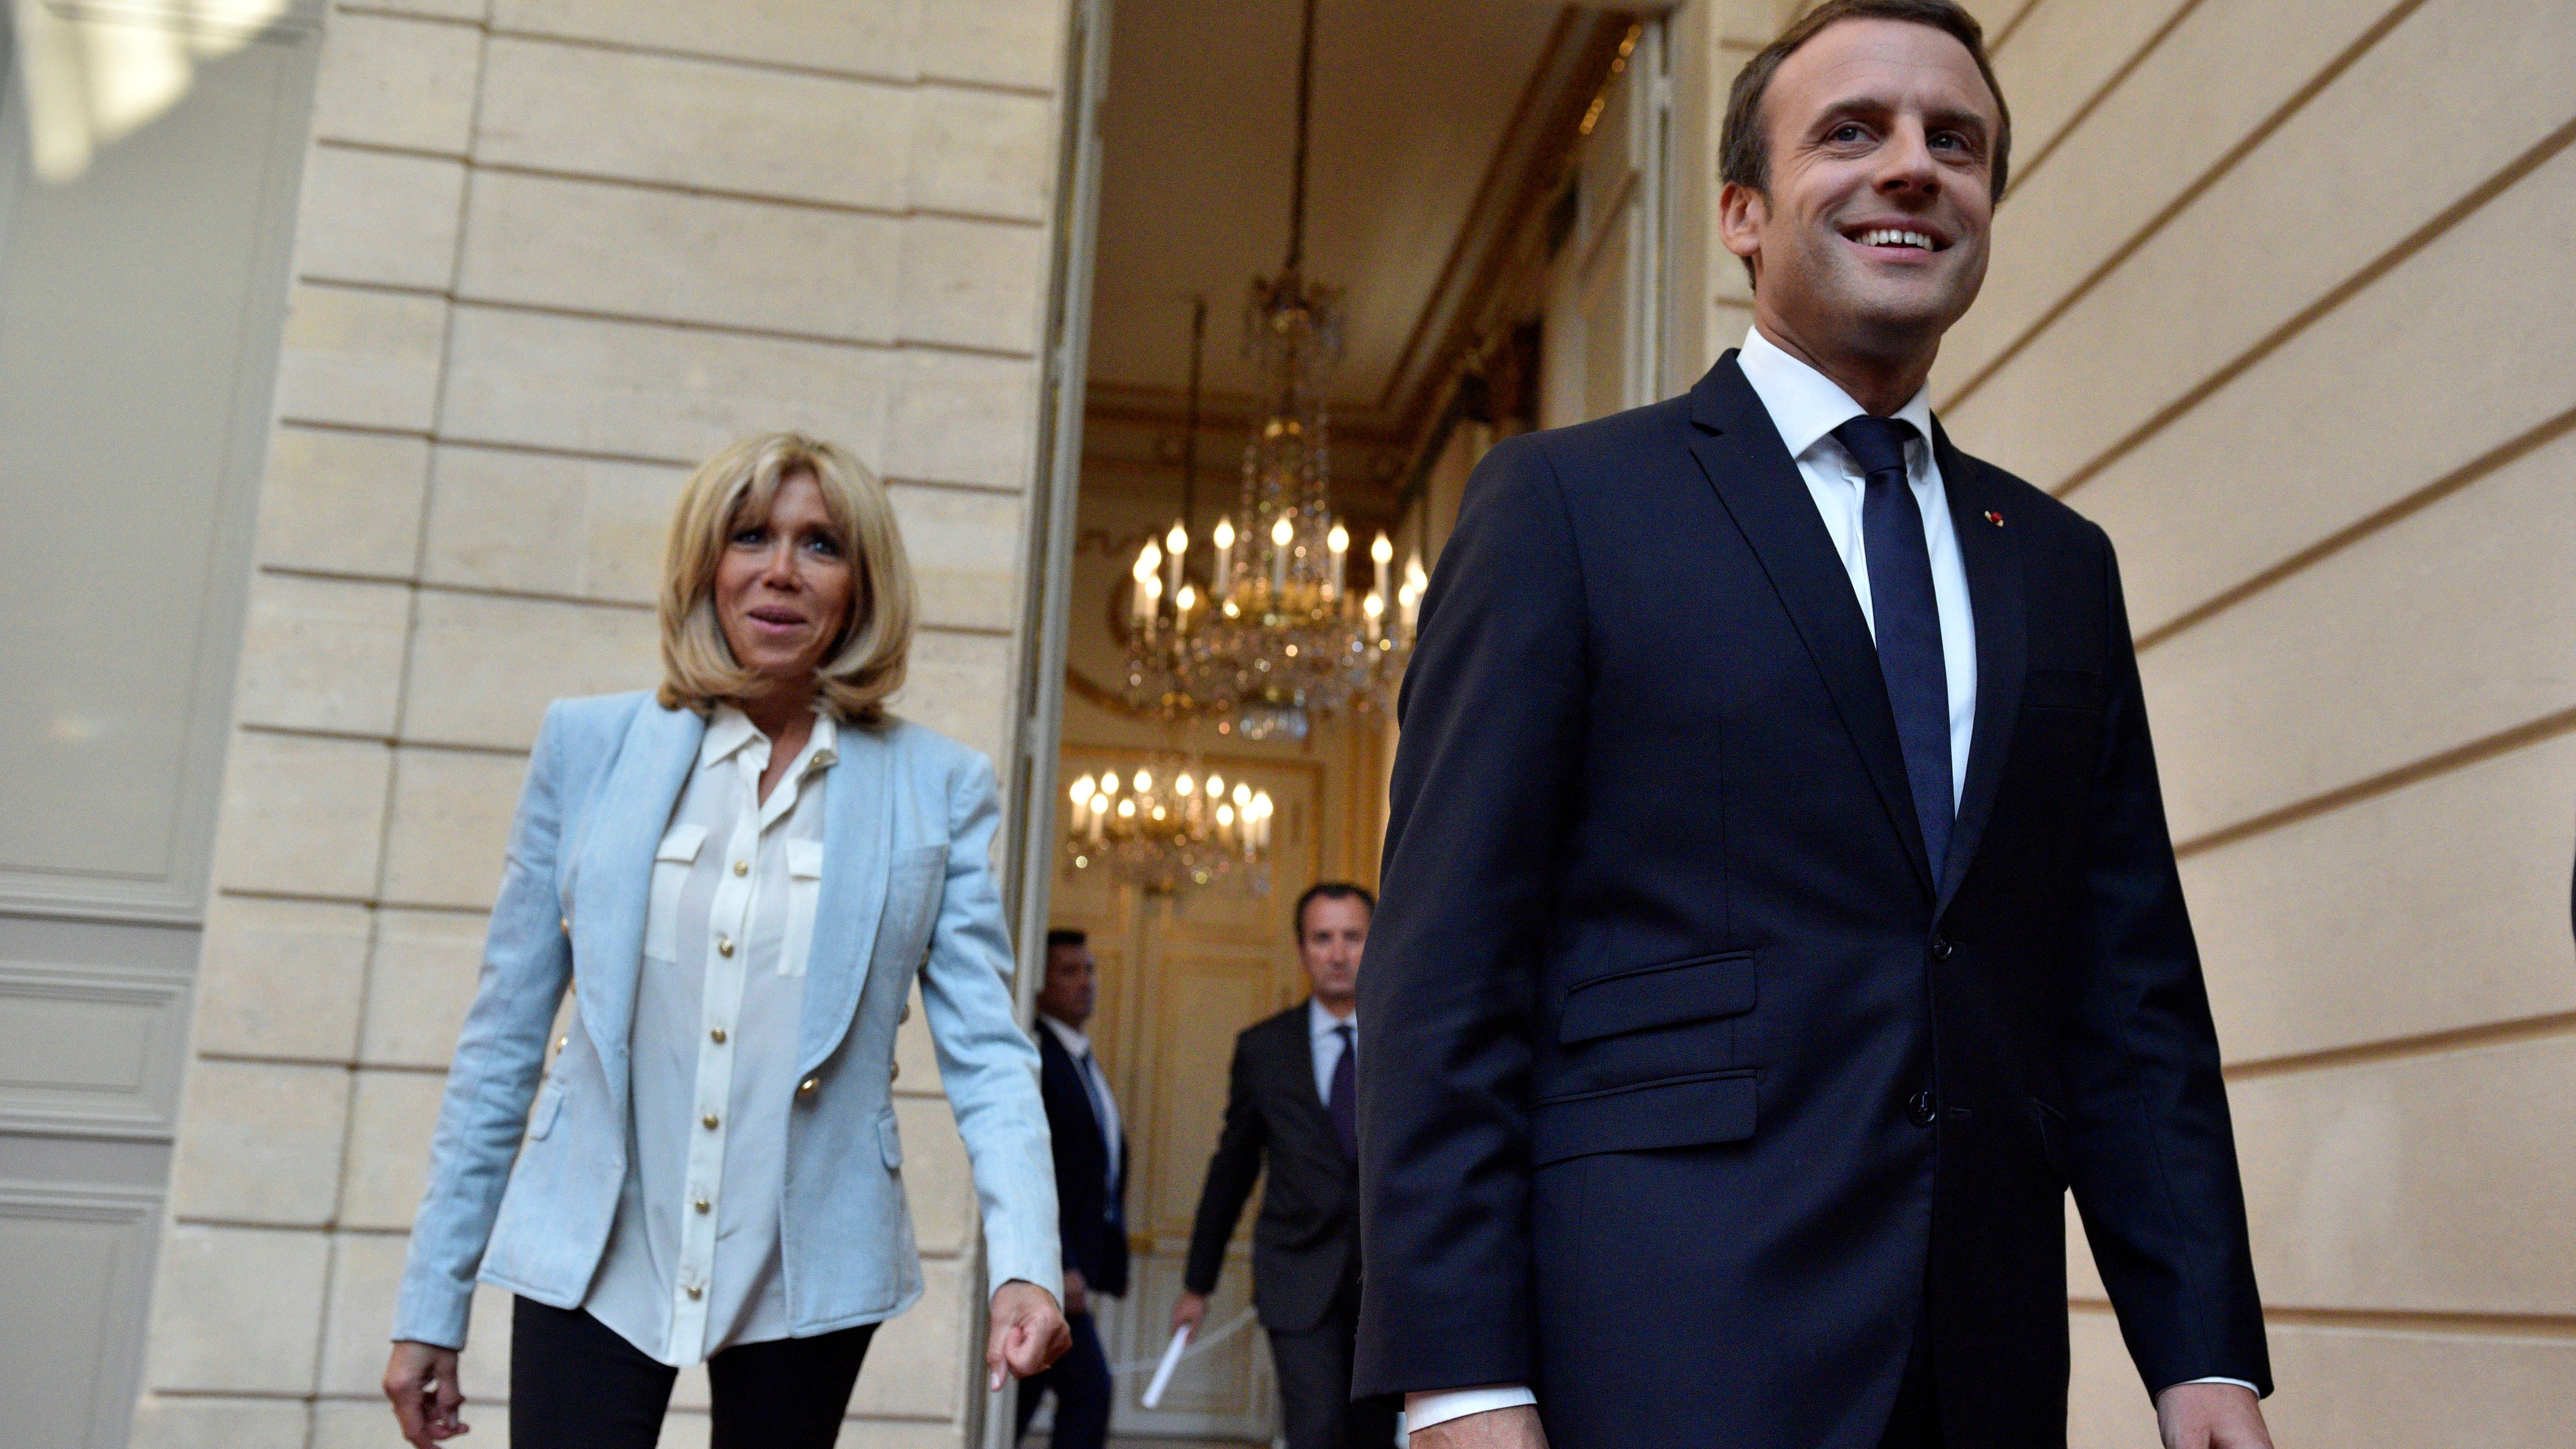 French President Emmanuel Macron and his wife Brigitte Macron arrive to attend a concert given by the Pierre Claver Association at the Elysee Palace in Paris